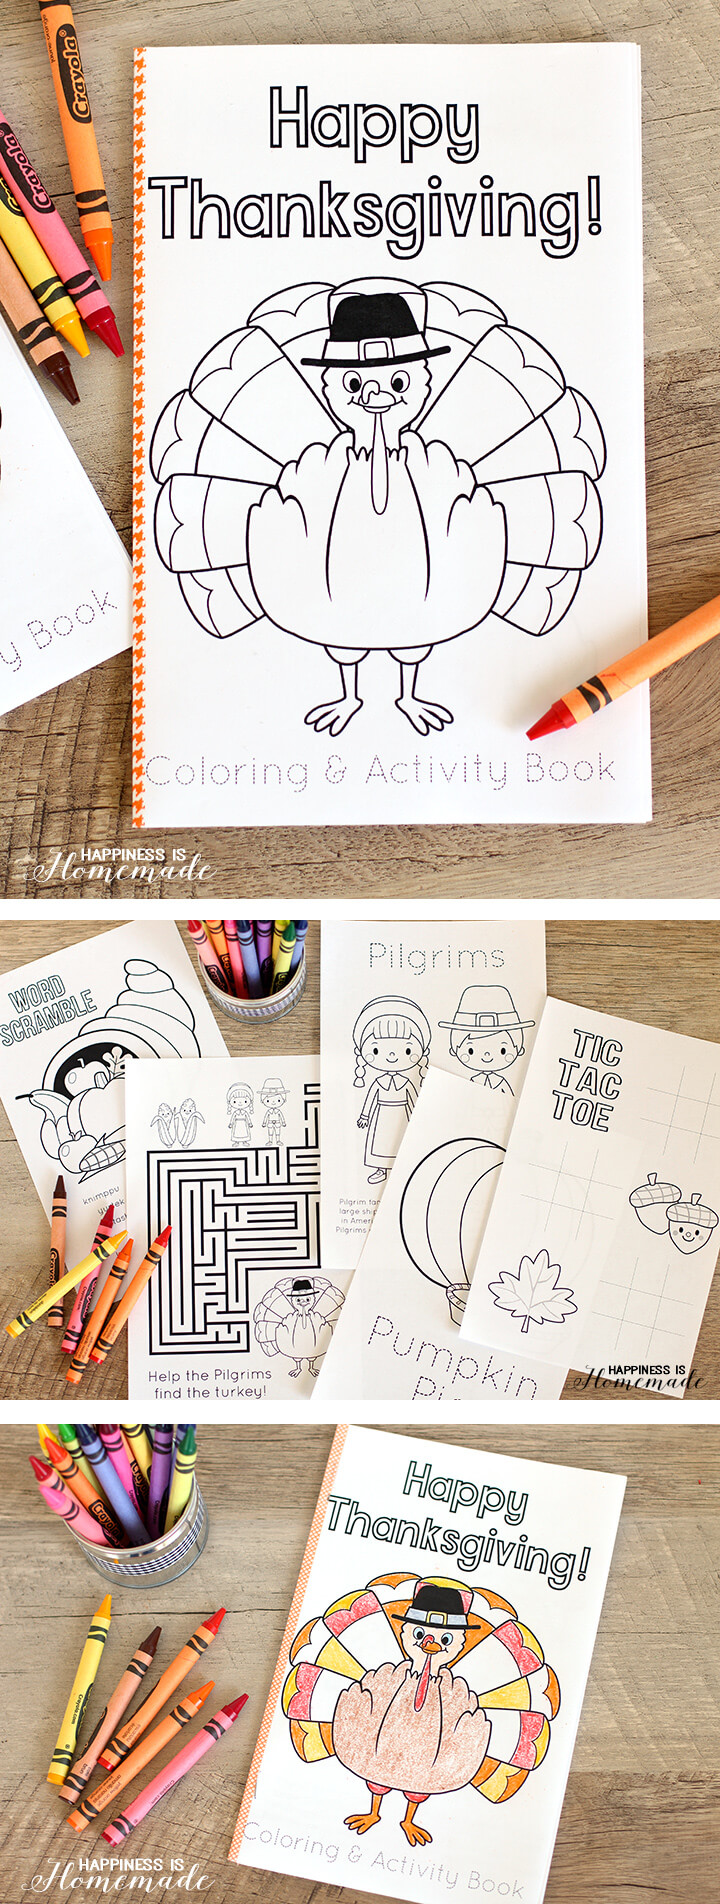 Free Printable Thanksgiving Coloring Book for the Kids Table